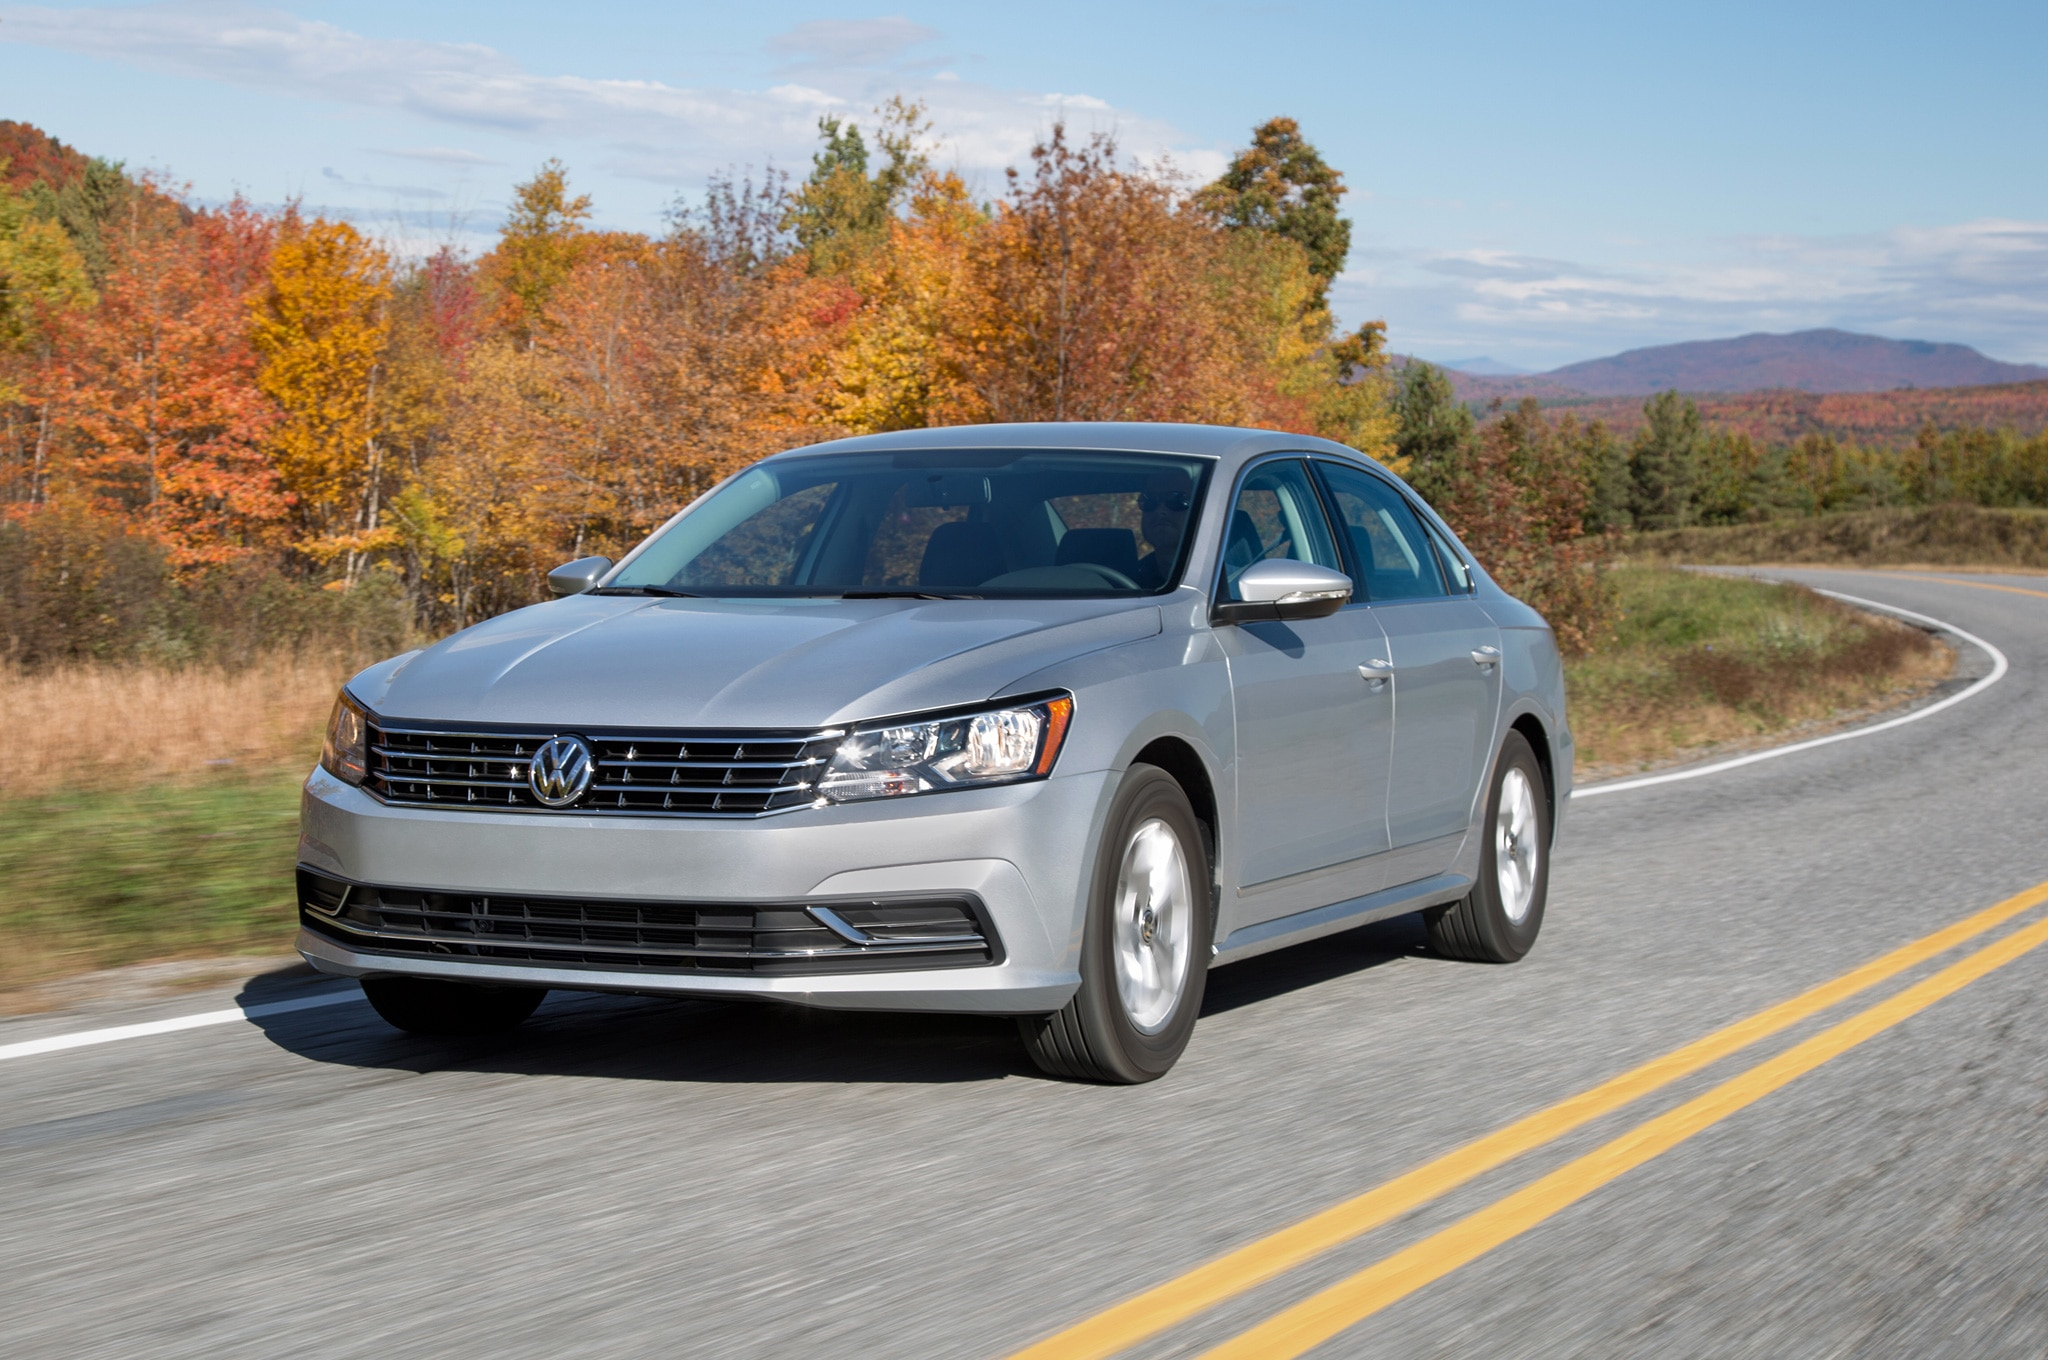 2016 Volkswagen Passat SEL Front Three Quarter In Motion 01